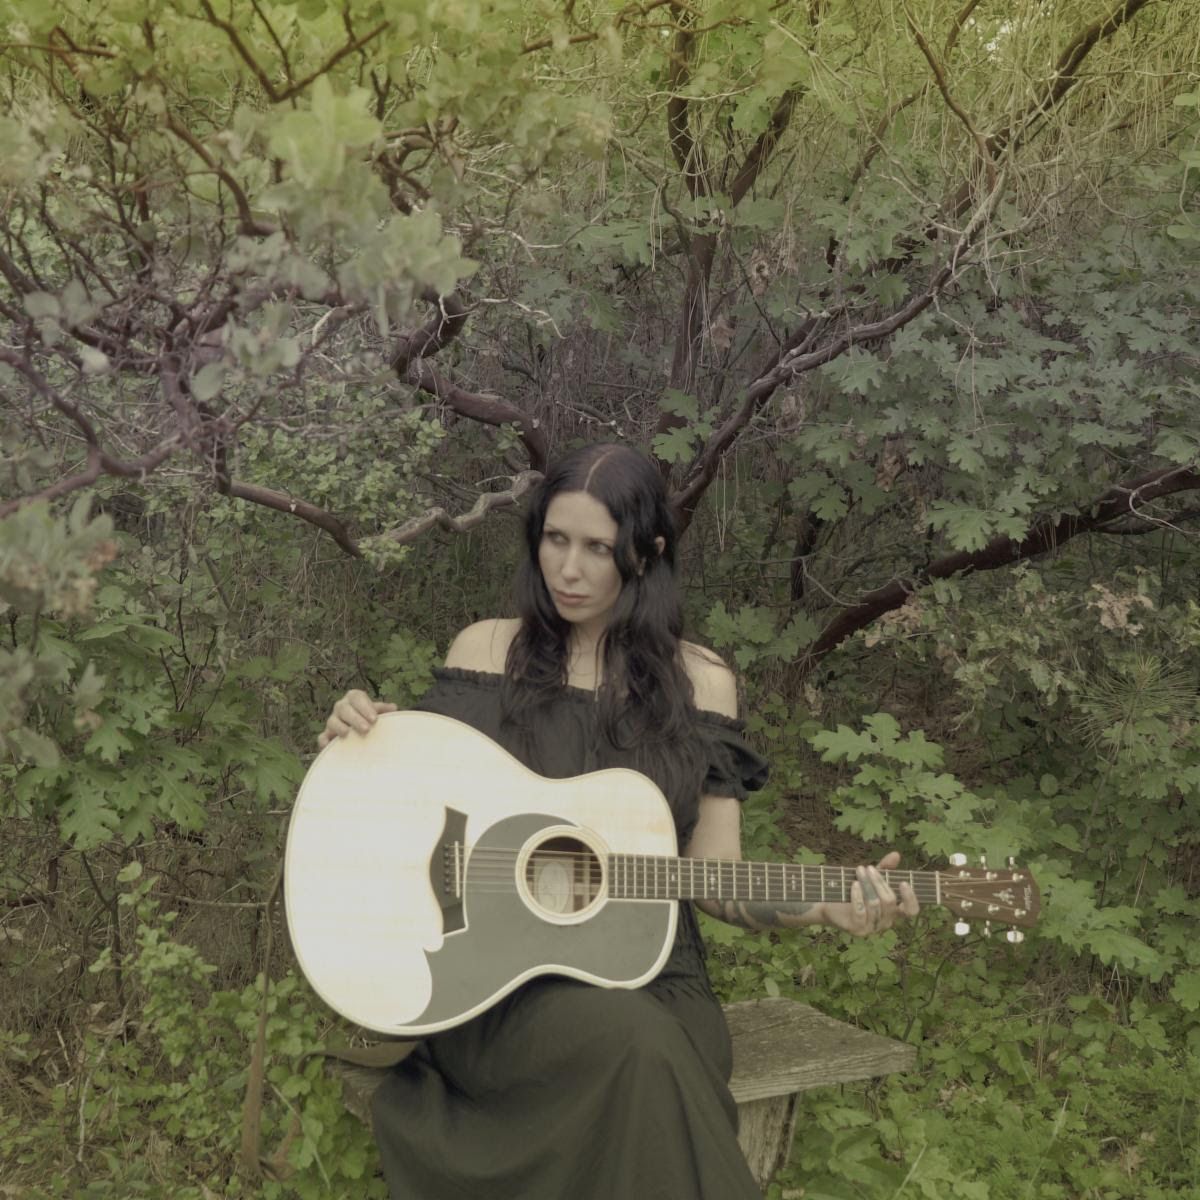 Chelsea Wolfe has shared two new songs from her Birth of Violence sessions